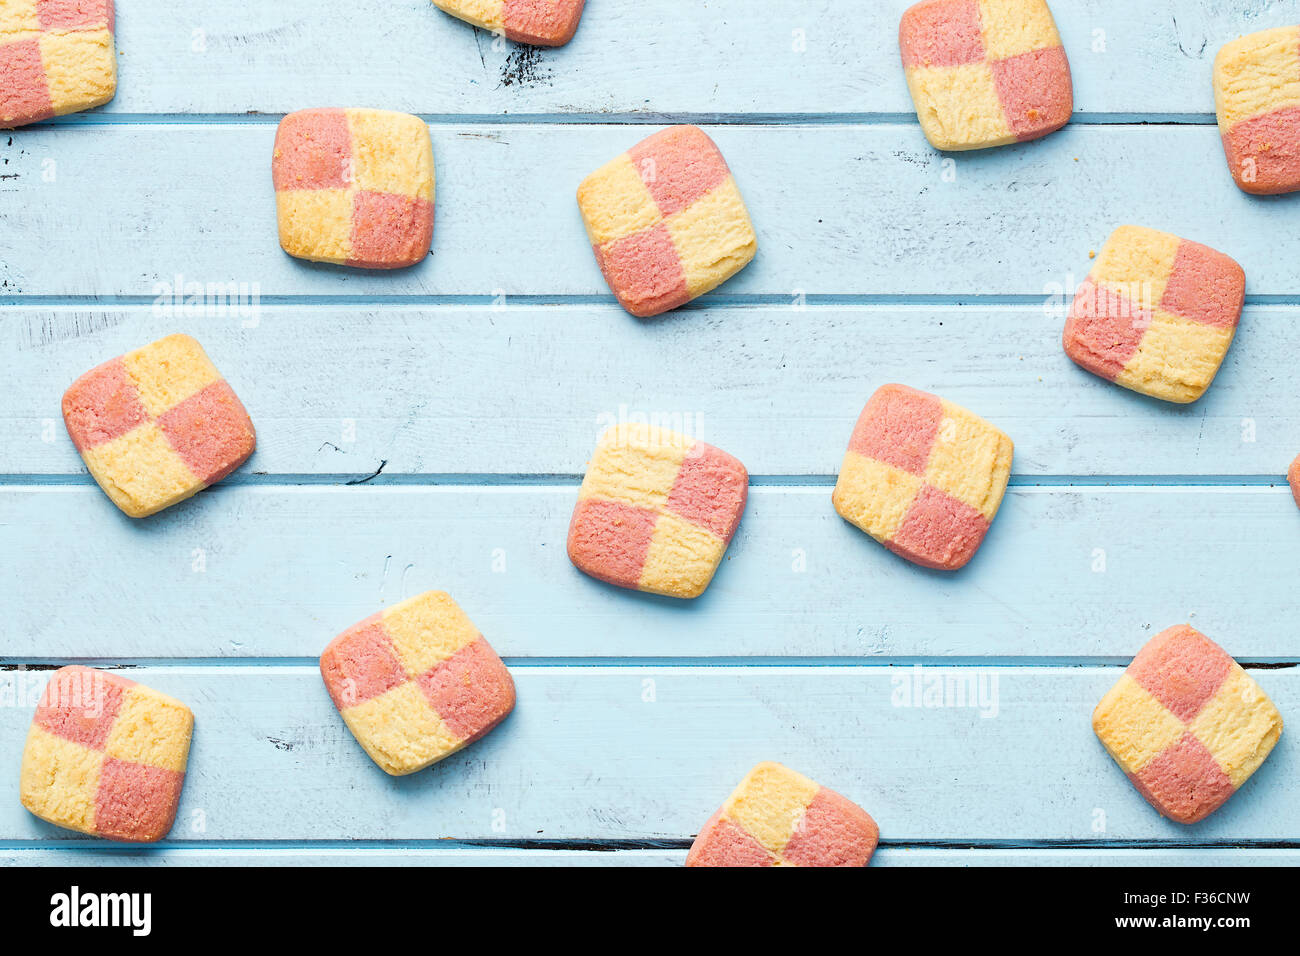 colored butter biscuits on blue table - Stock Image